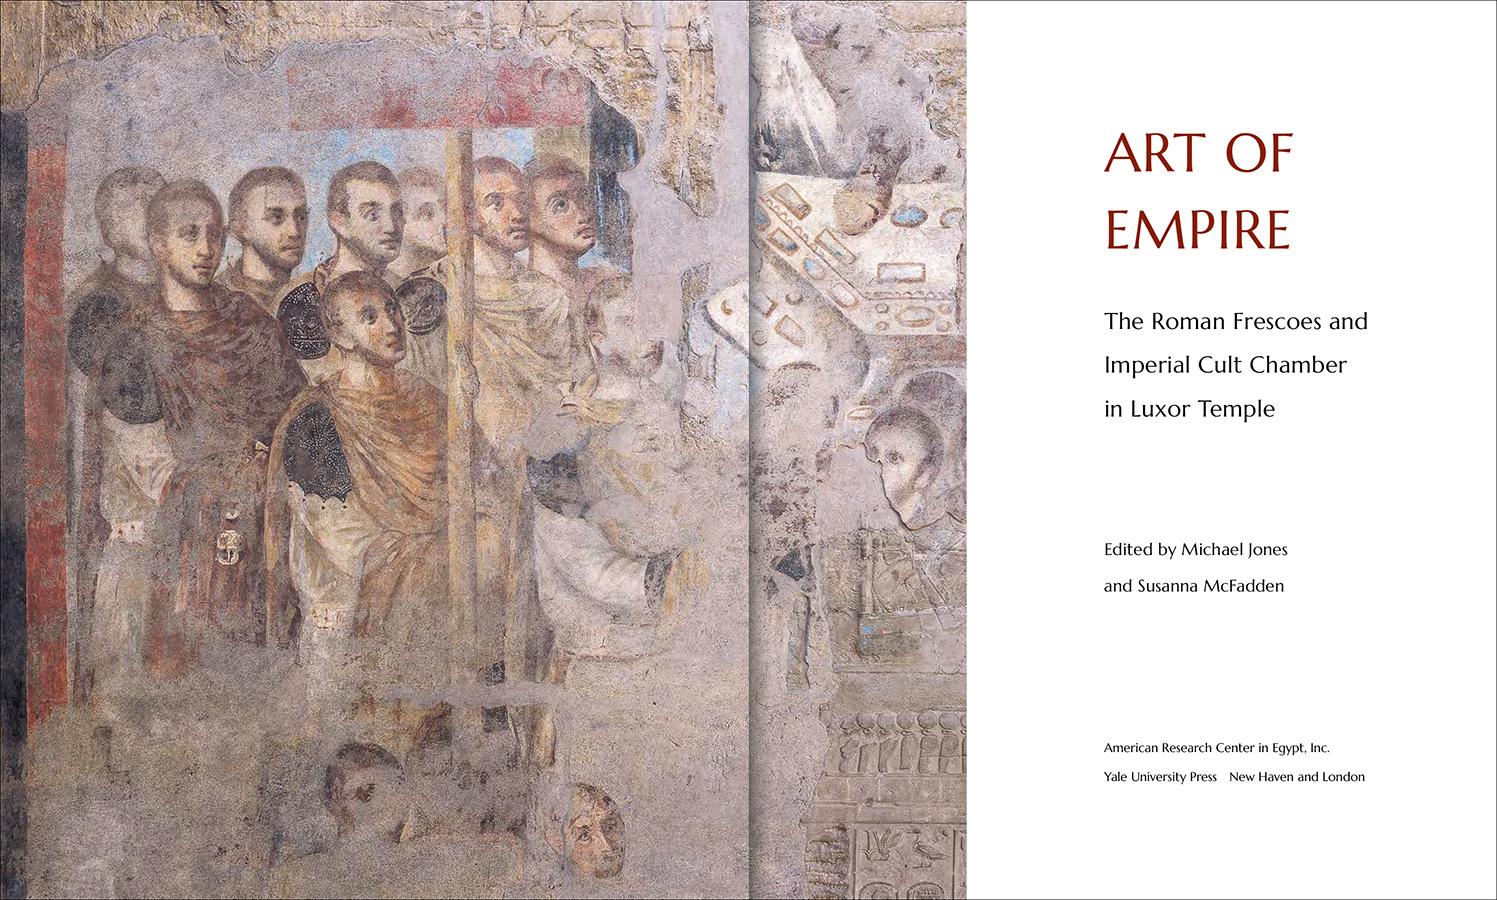 Art of Empire title page